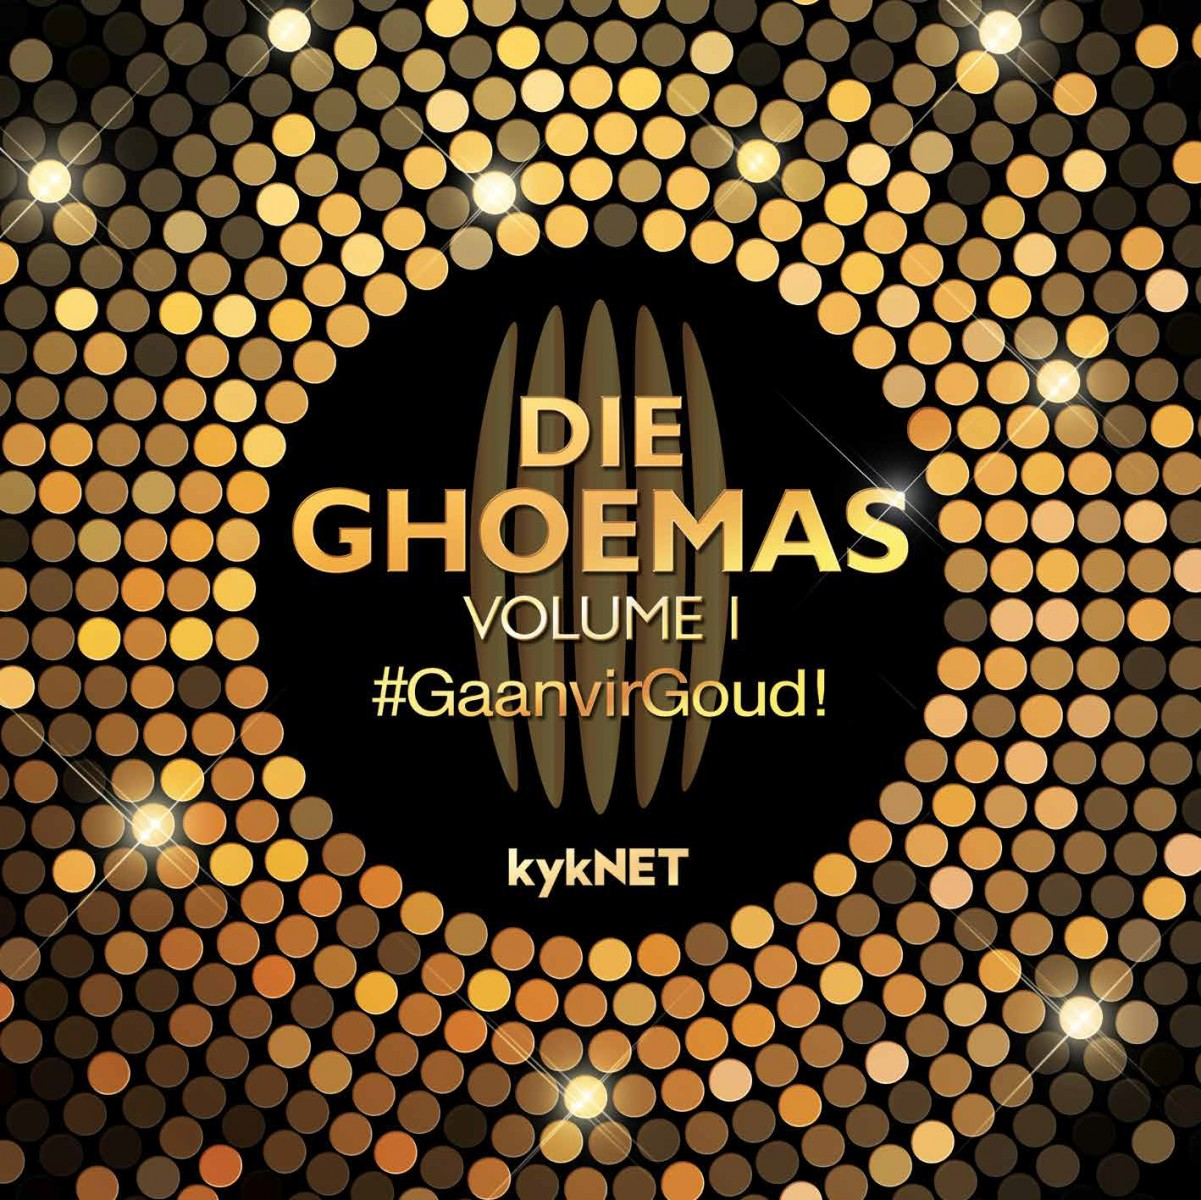 Die Ghoemas Vol.1 CD - WOWCD021